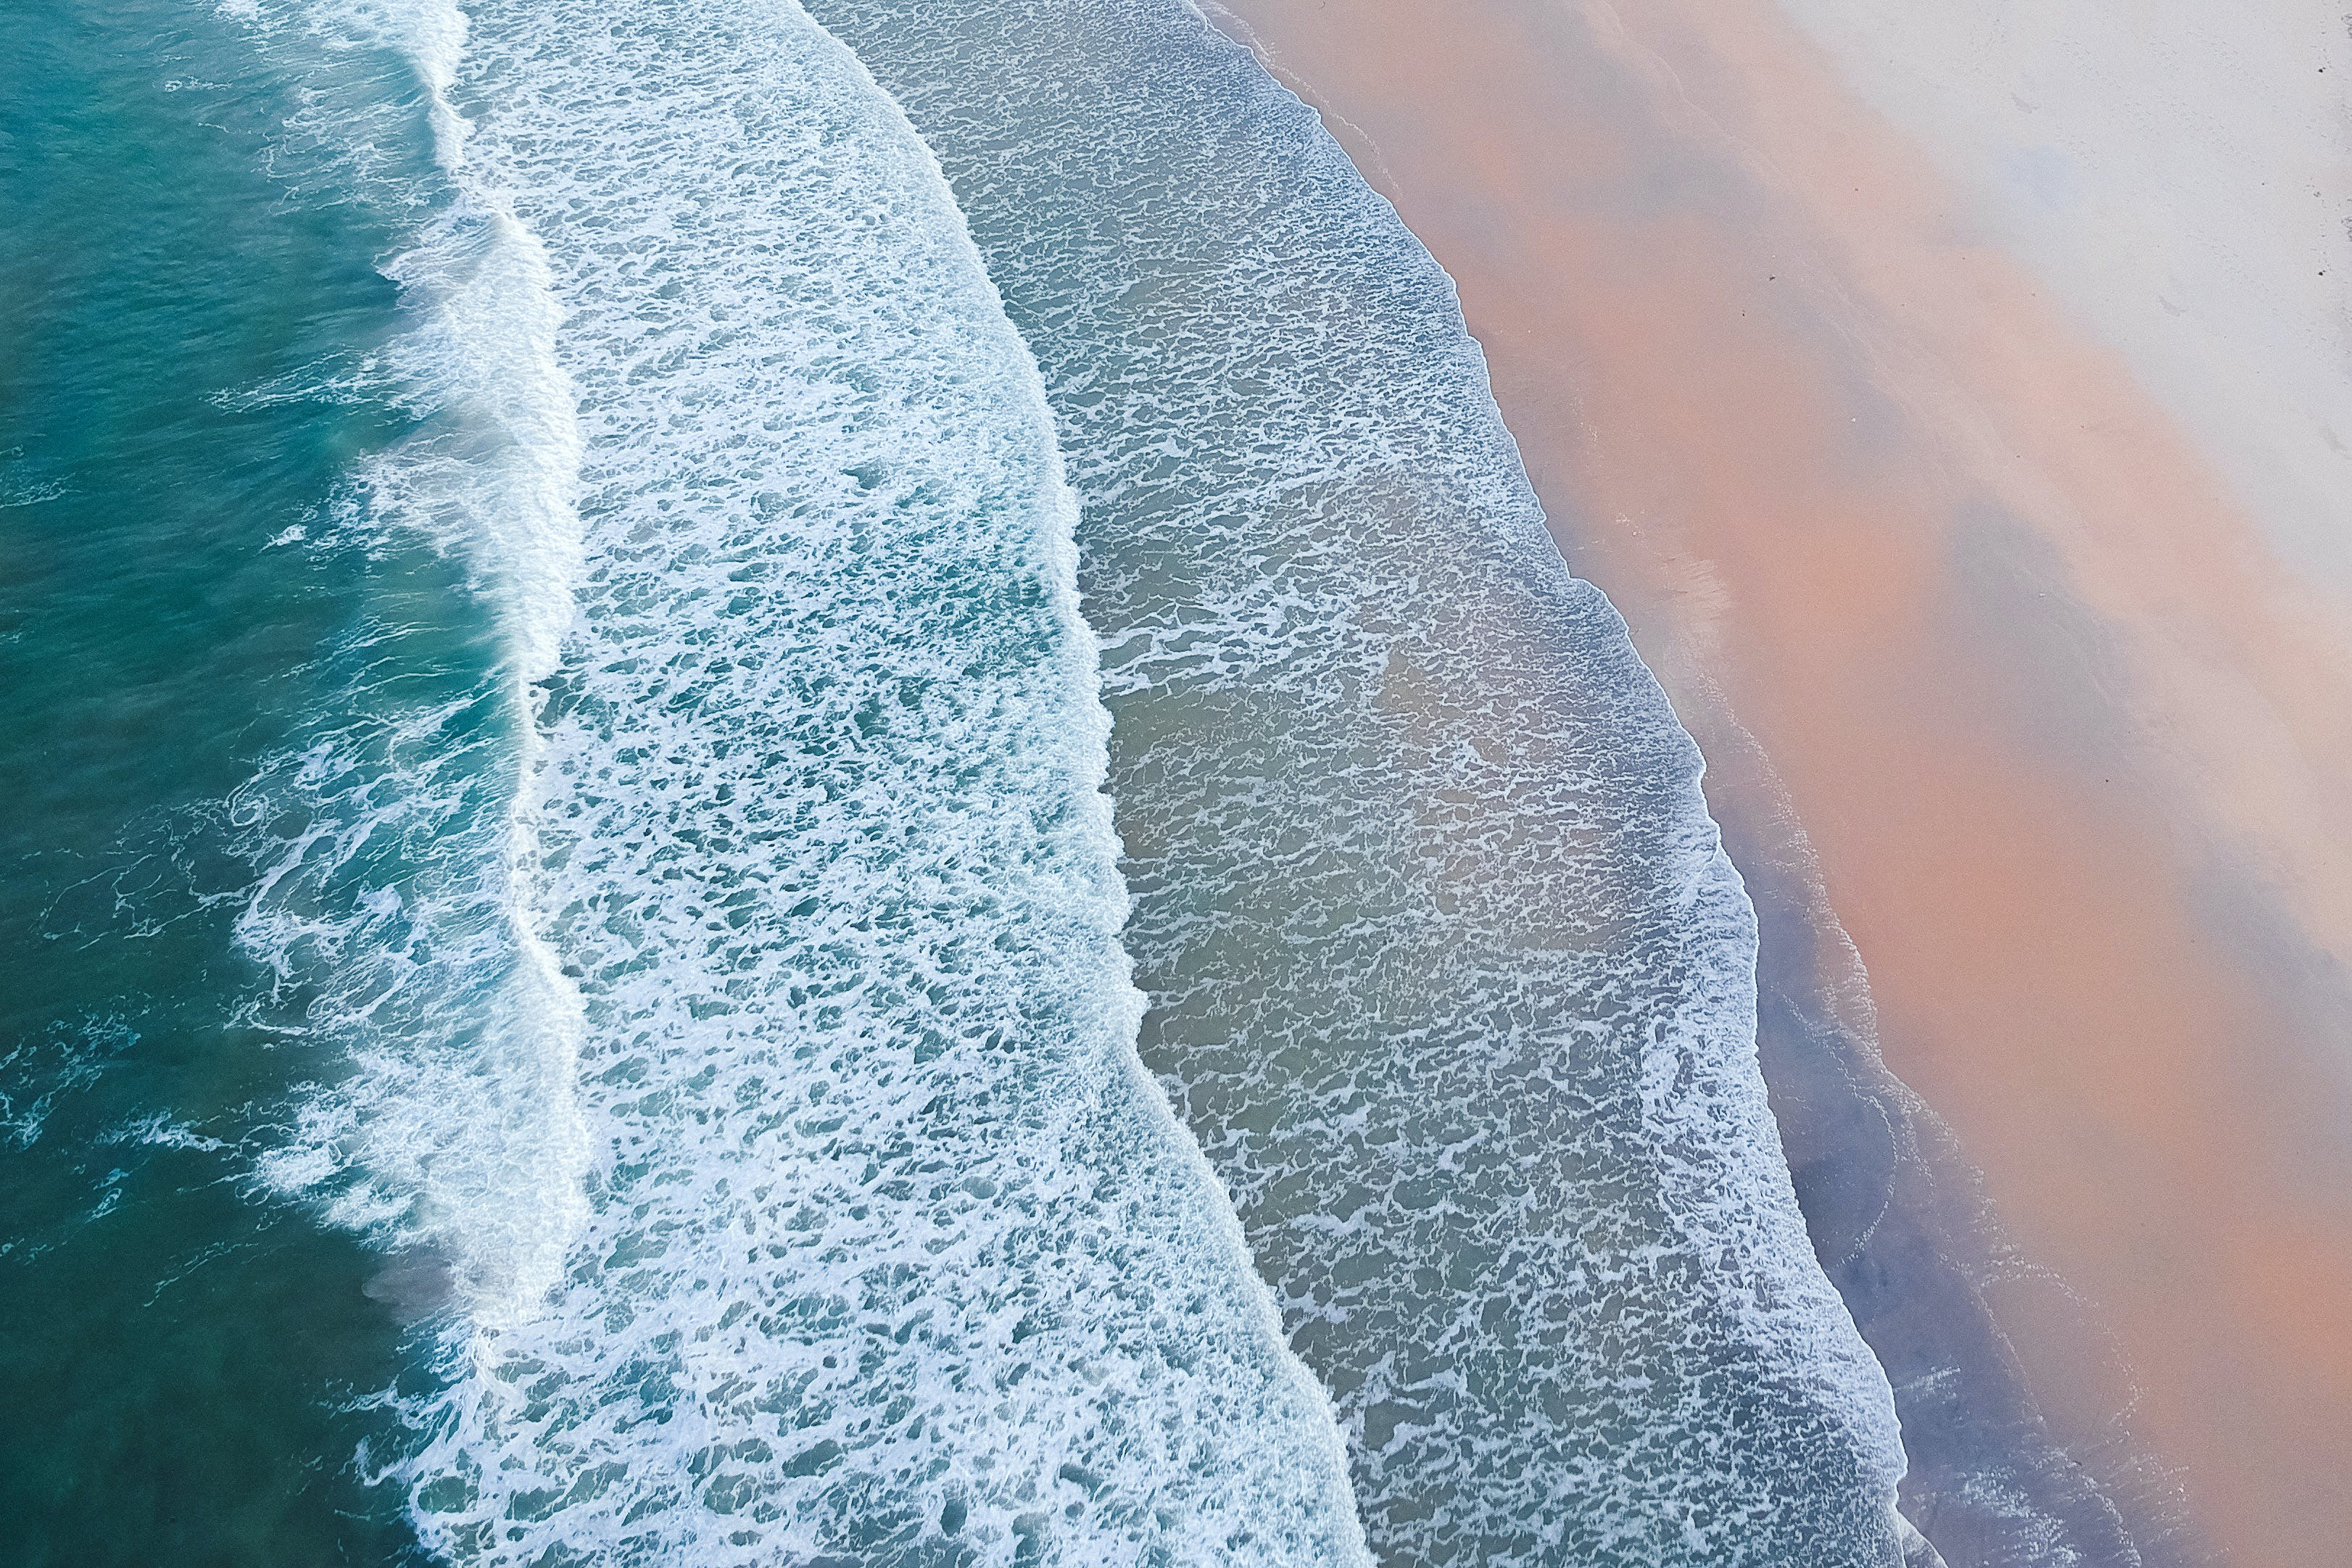 Drone Shot of Light Waves